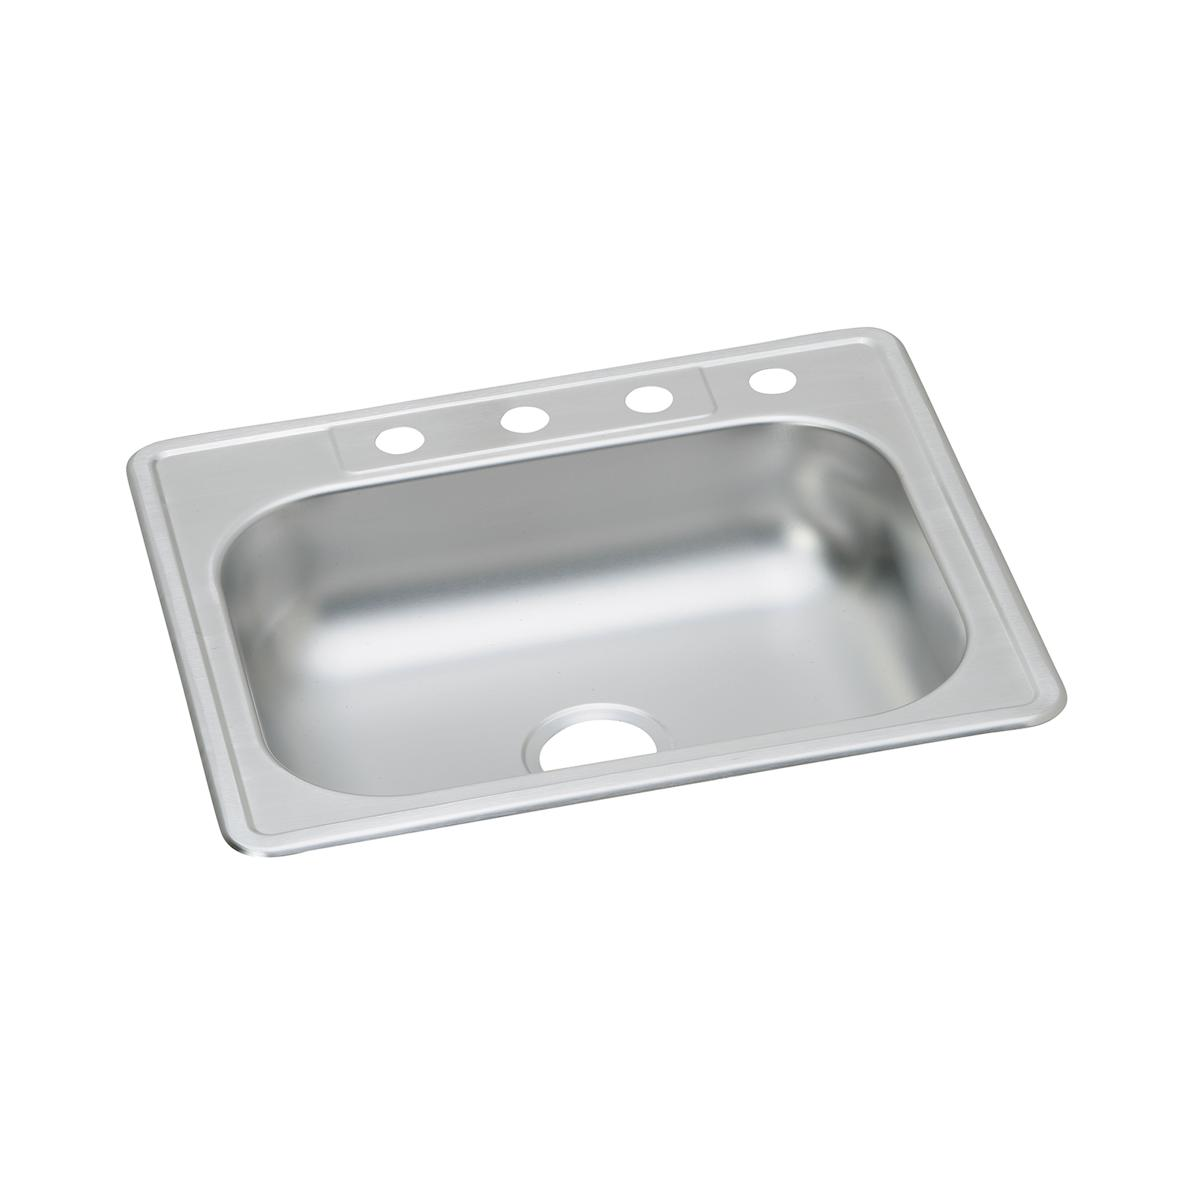 "Dayton Stainless Steel 25"" X 22"" X 6-1/16"", Single Bowl Drop-in Sink"